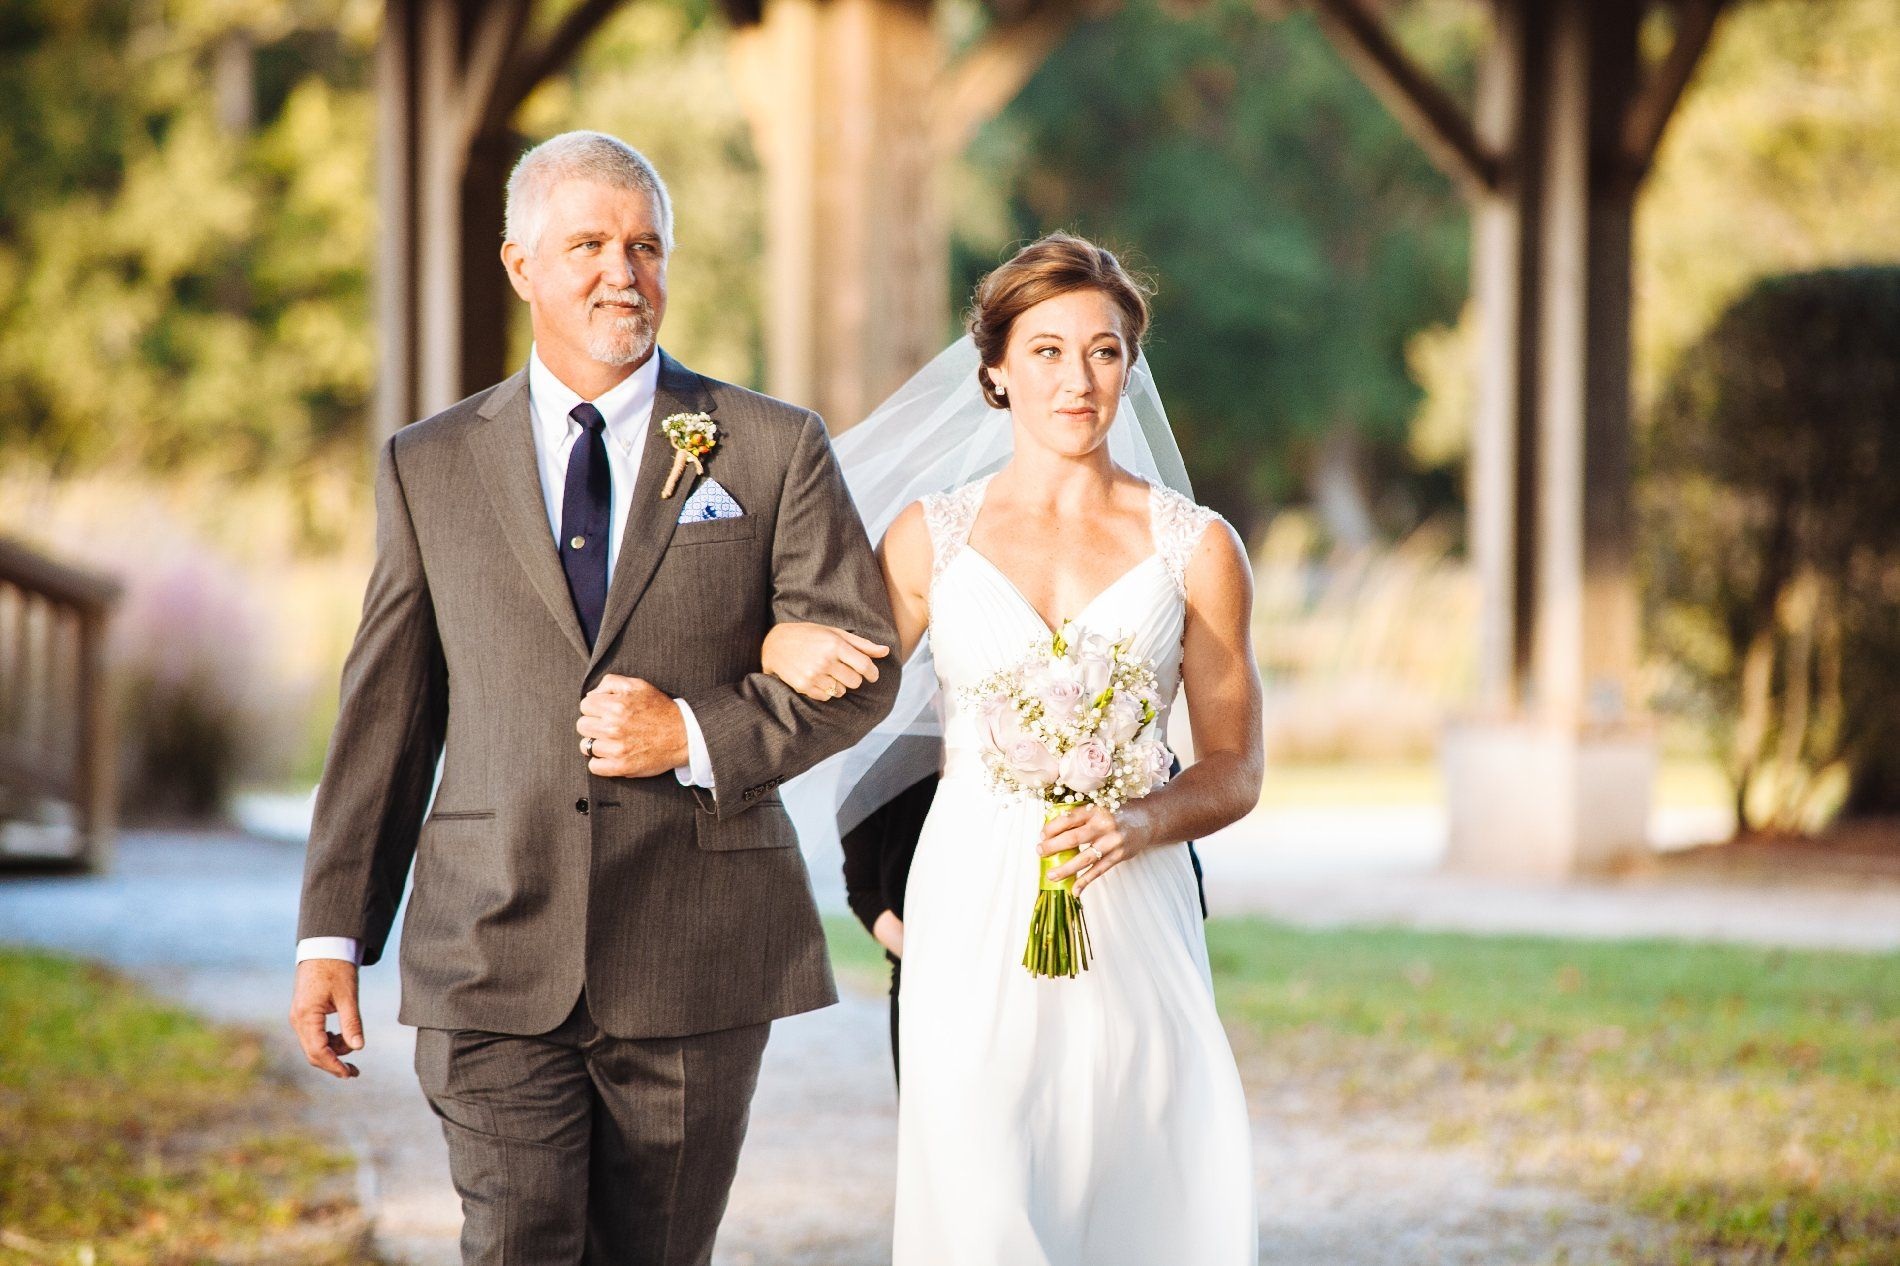 Our bride Carrie featured on Borrowed & Blue.  Photo Credit: Red Shutter Studio @essensedesigns